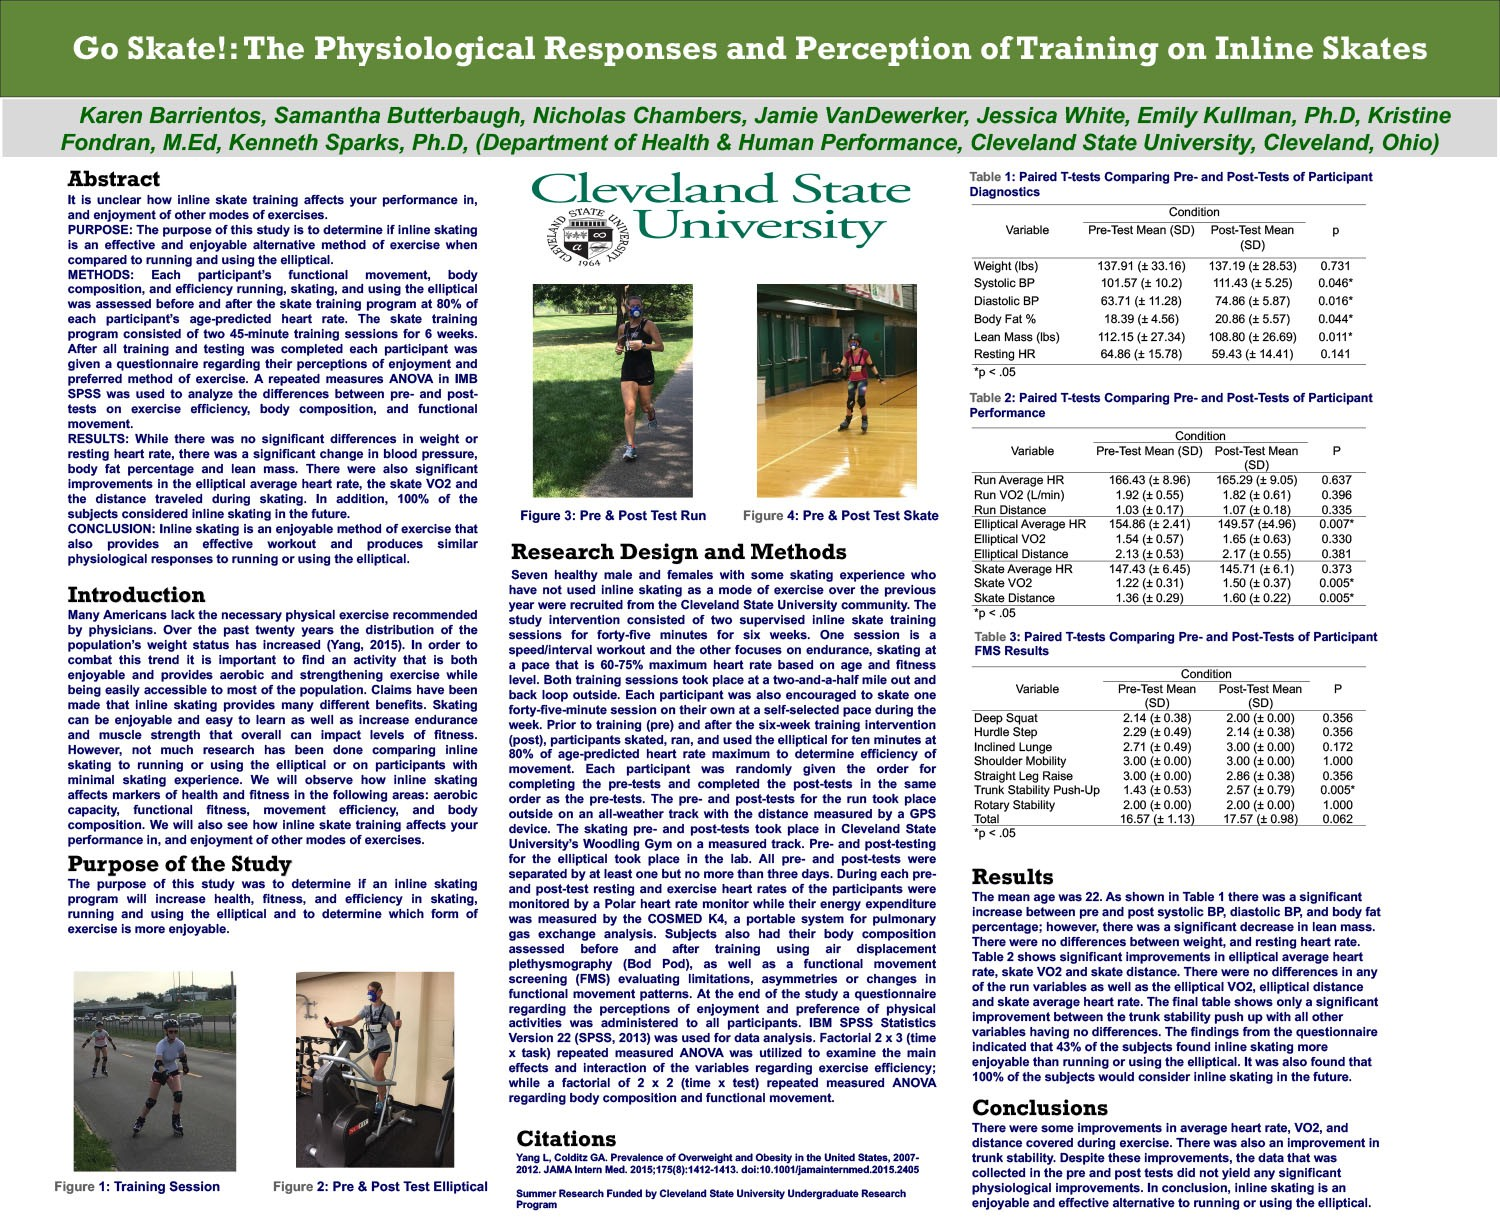 Go Skate! The Physiological Responses and Perception of Training on Inline Skates